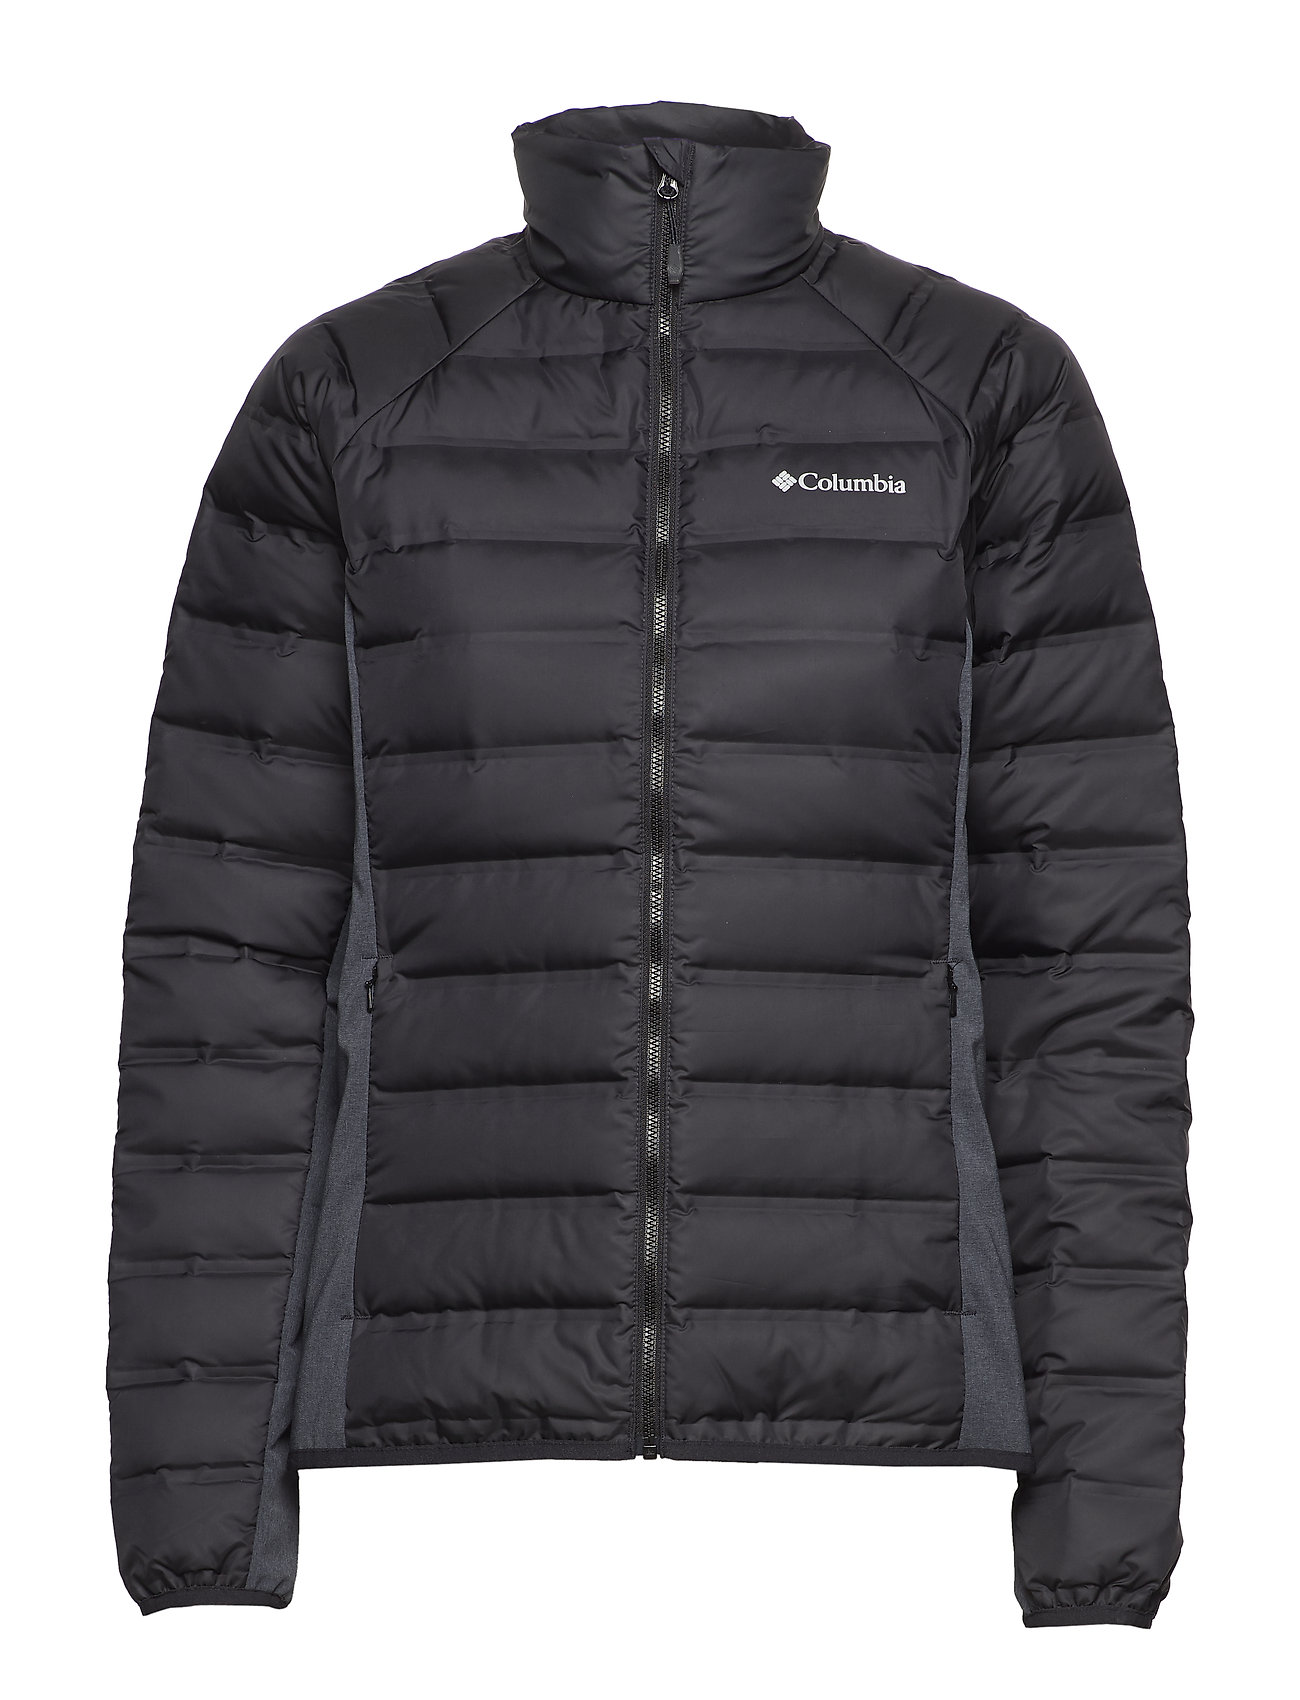 22� Jacketblack ii black HeatherColumbia Lake Hybrid A5qj34RL